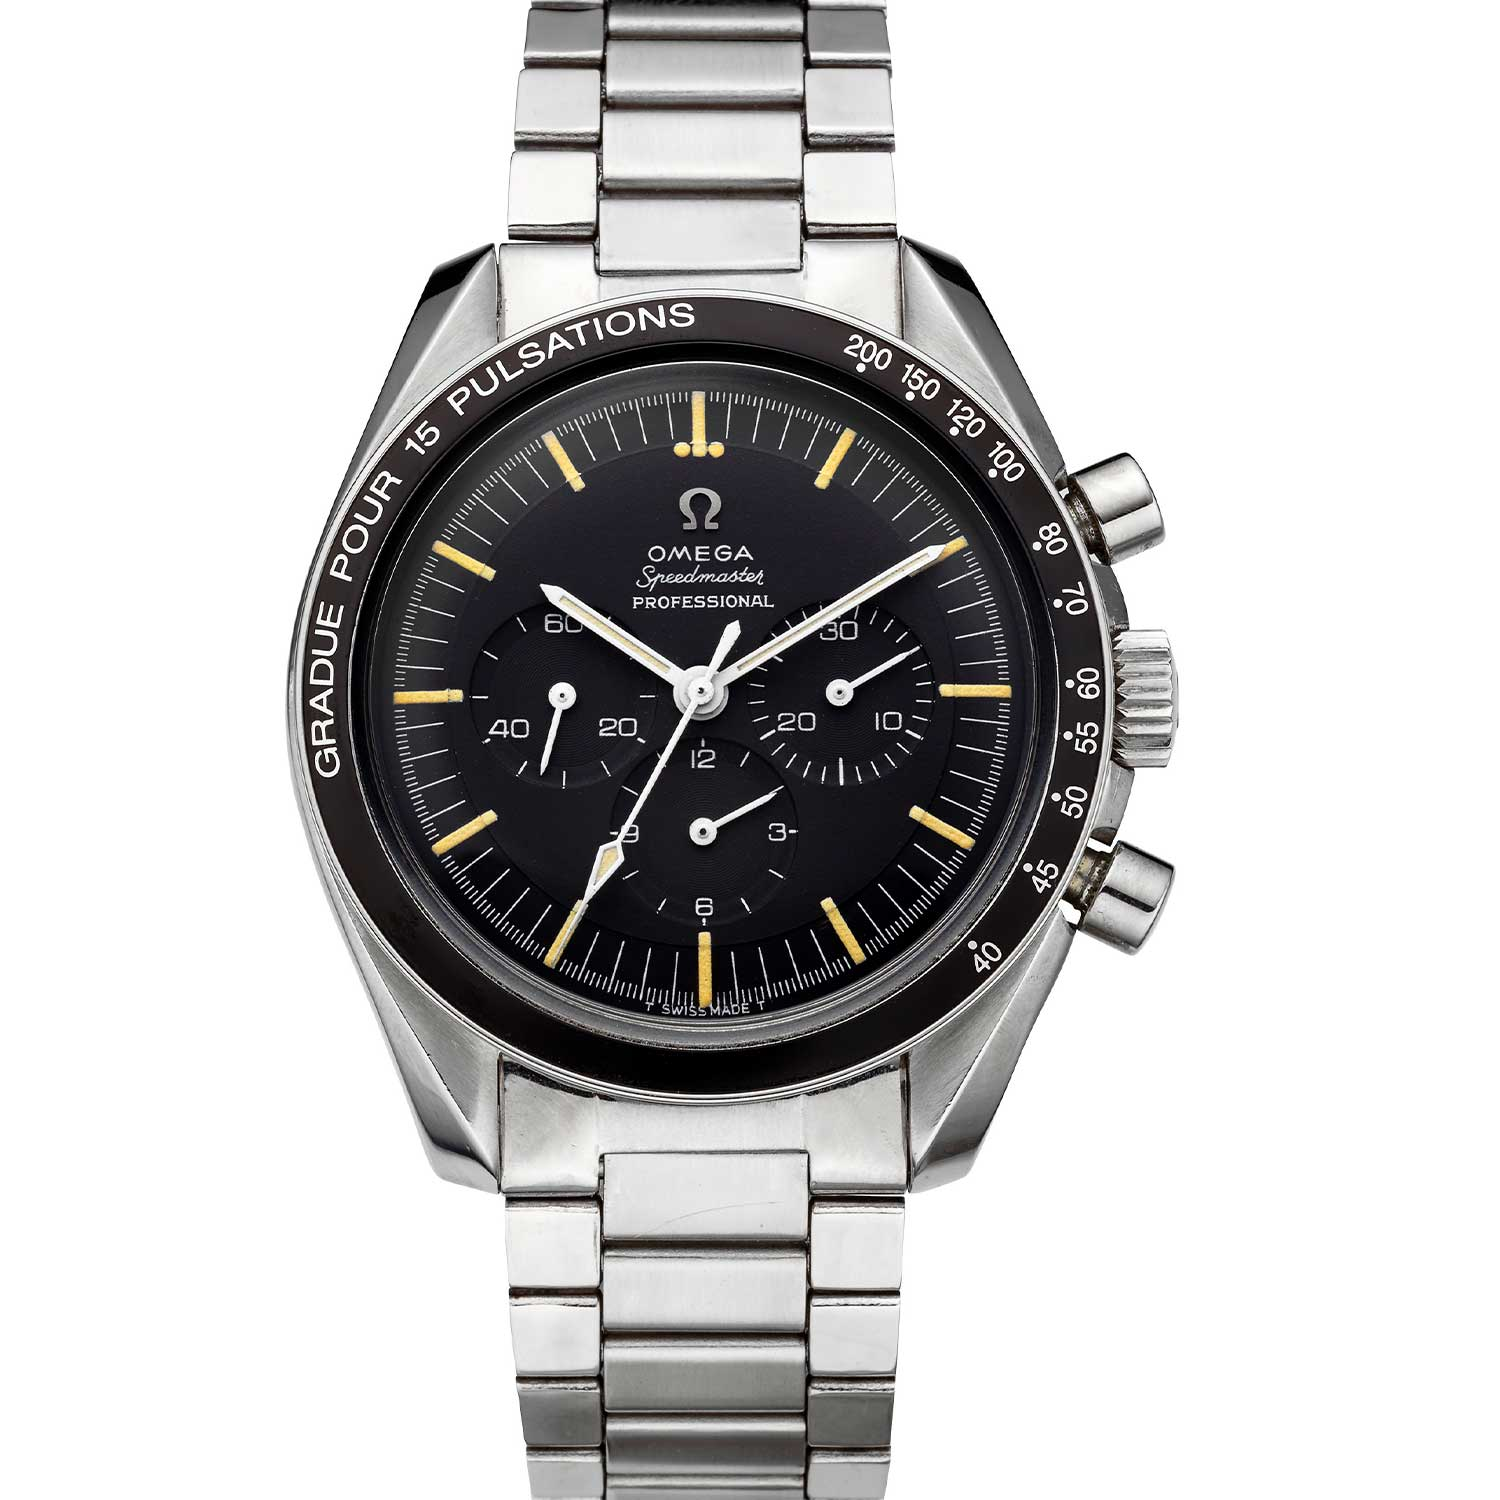 The Speedmaster ref. ST 105.012 with a pulsation scale bezel (Image: Christies.com)